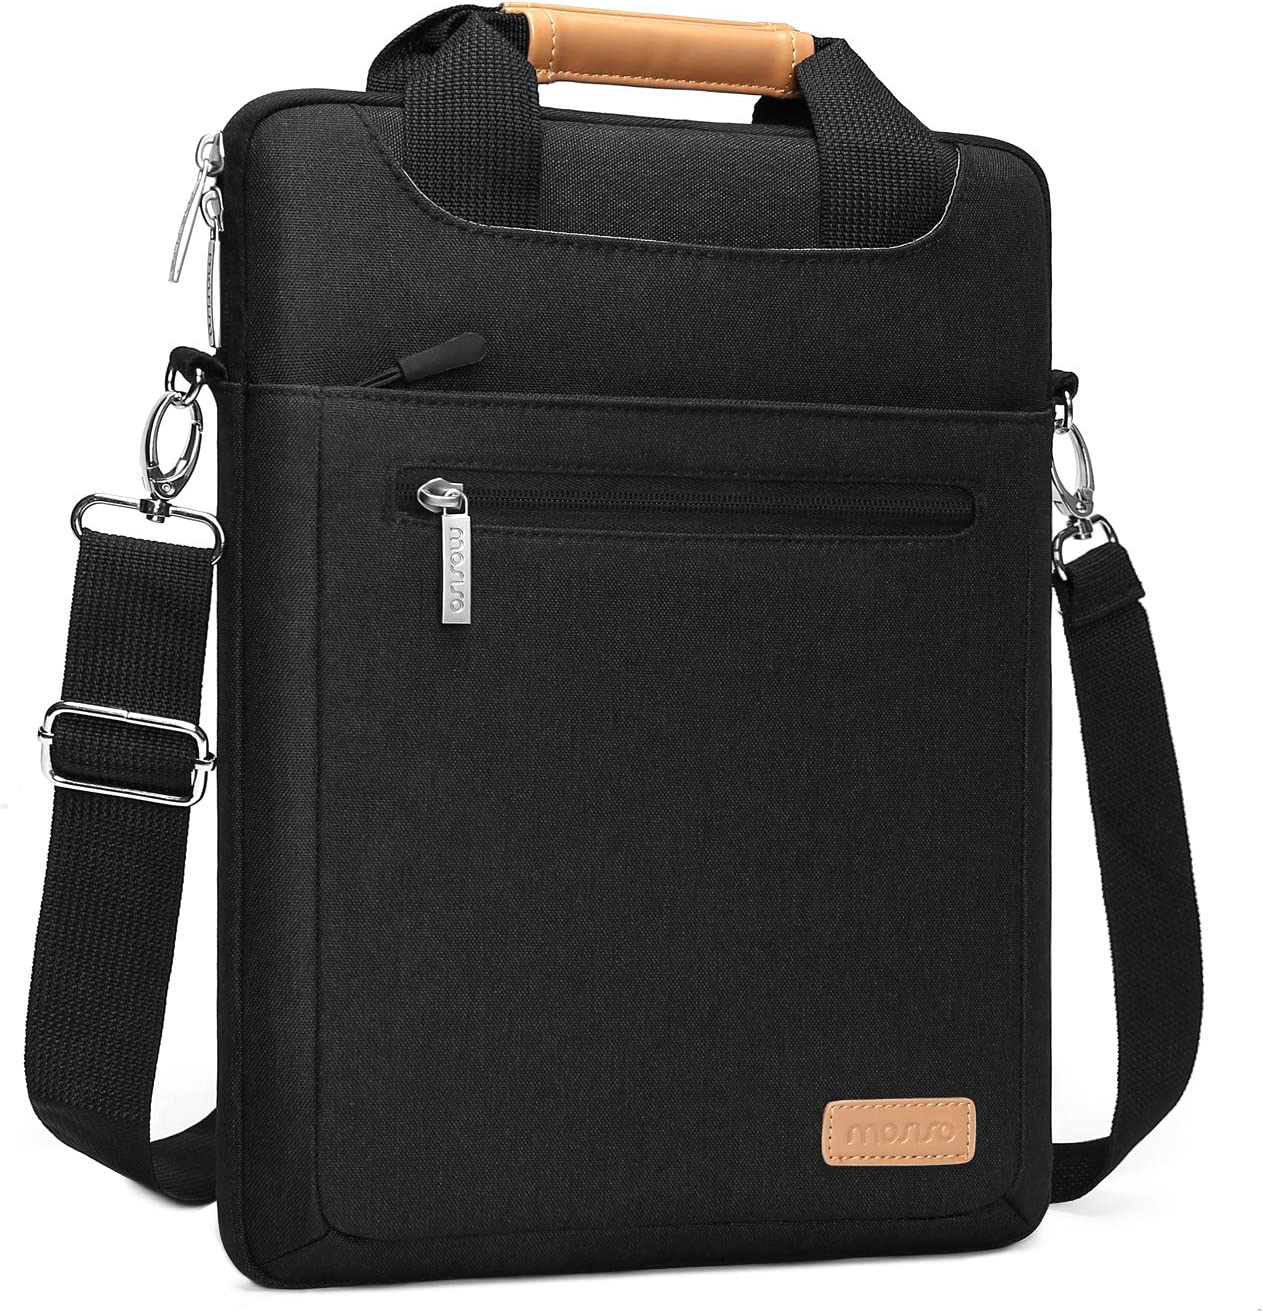 MOSISO Vertical Laptop Shoulder Bag Compatible with MacBook Pro/Air 13, 13-13.3 inch Dell HP Acer Surface Notebook Computer, Polyester Messenger Sleeve Handbag with Zipper Pockets&Trolley Belt, Black